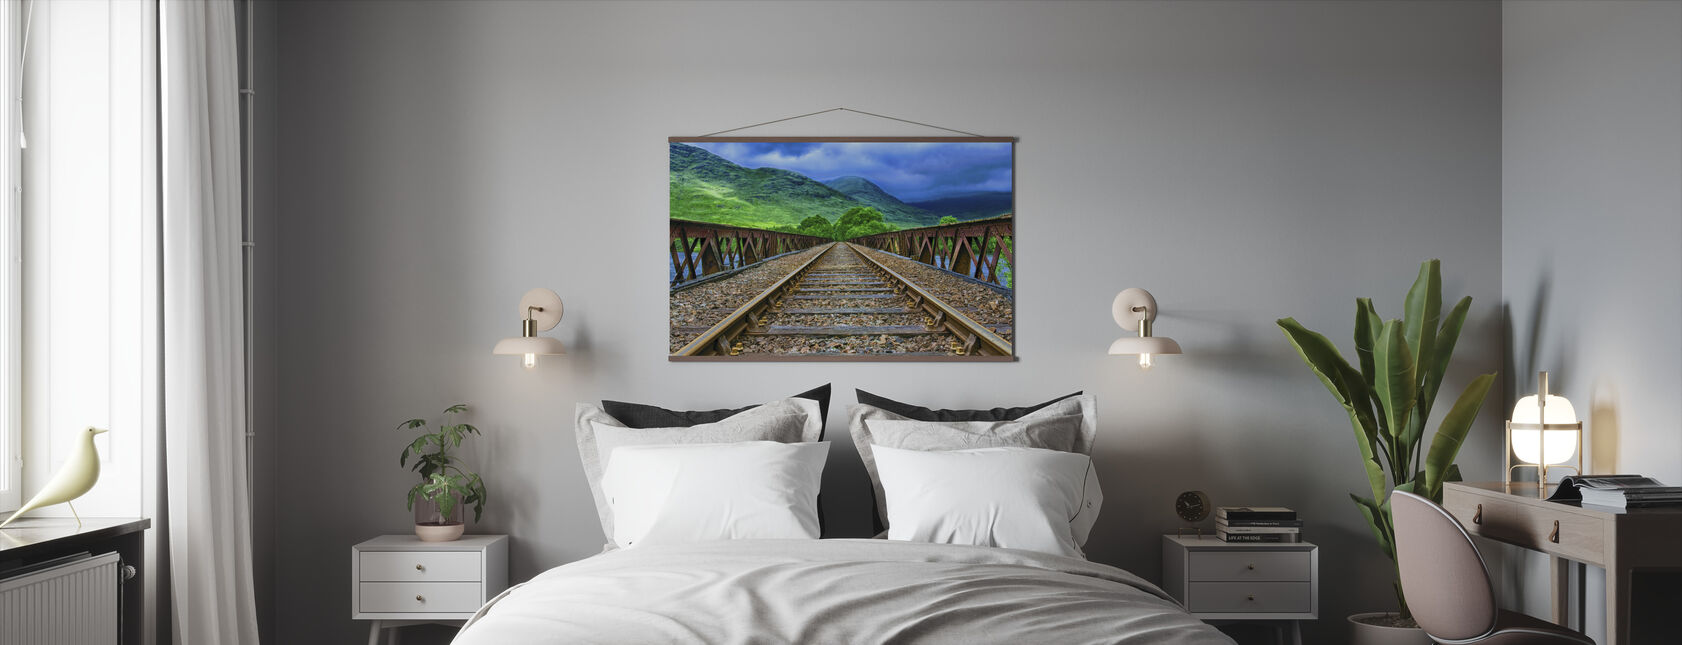 Pennsylvania Railroad Bridge - Poster - Slaapkamer